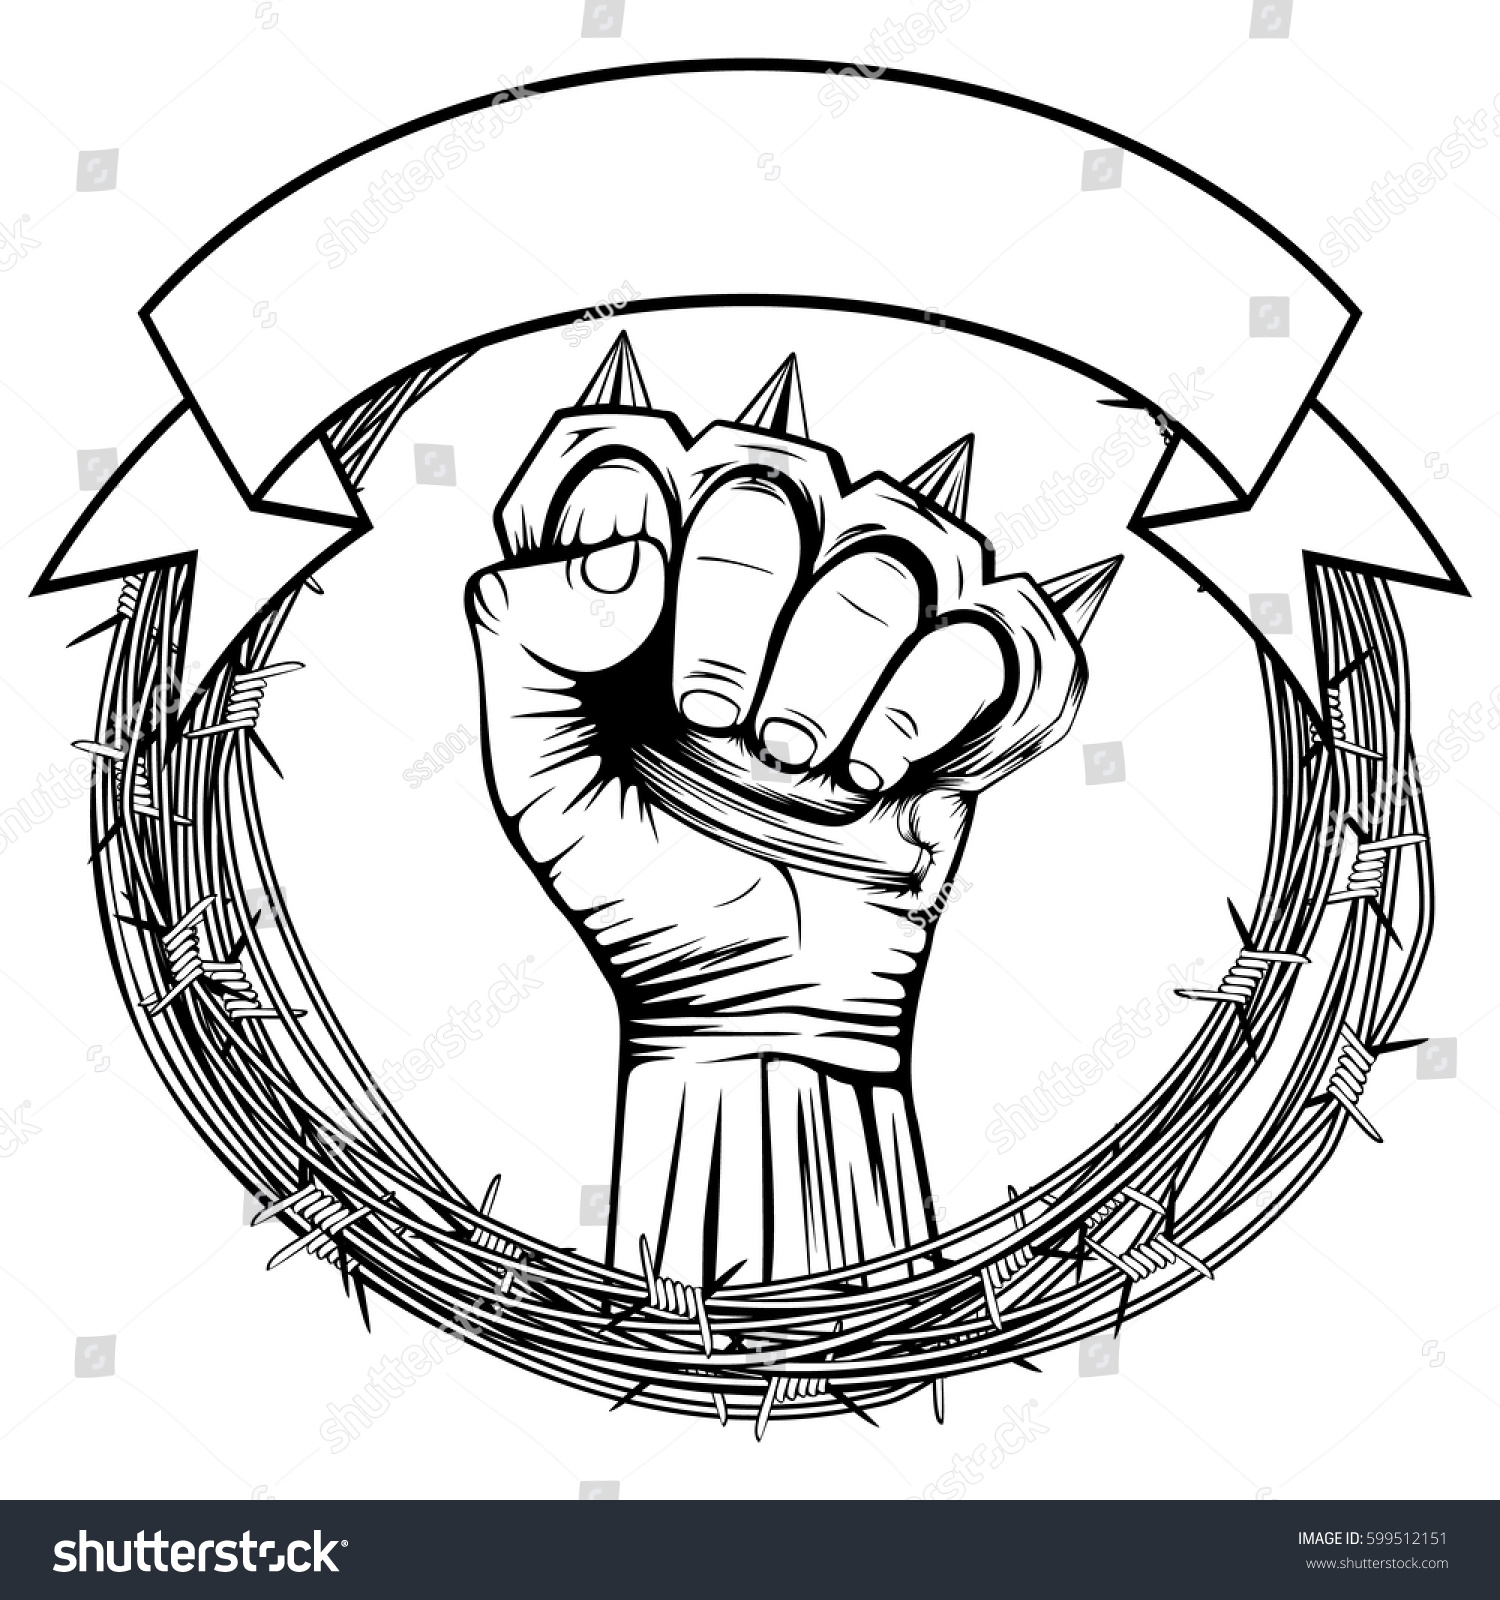 Vector Illustration Barbed Wire Hand Brass Stock Vector 599512151 ...